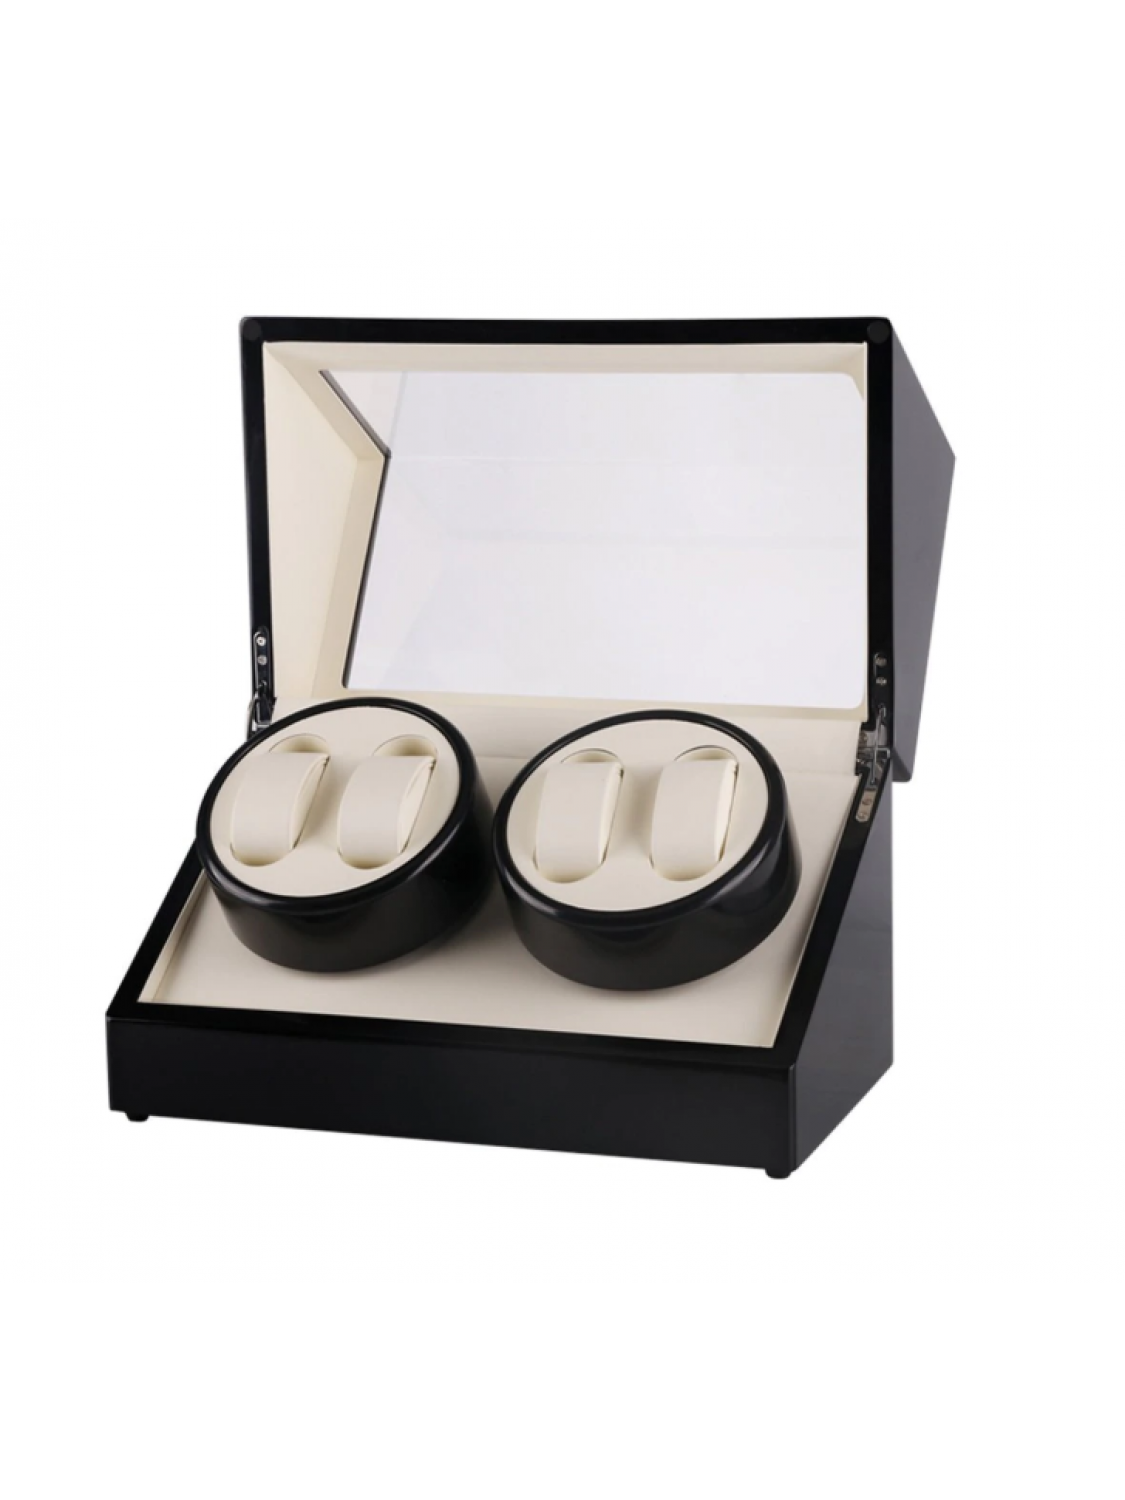 Watch winder i sort piano træ til 4 ure m. beige-315